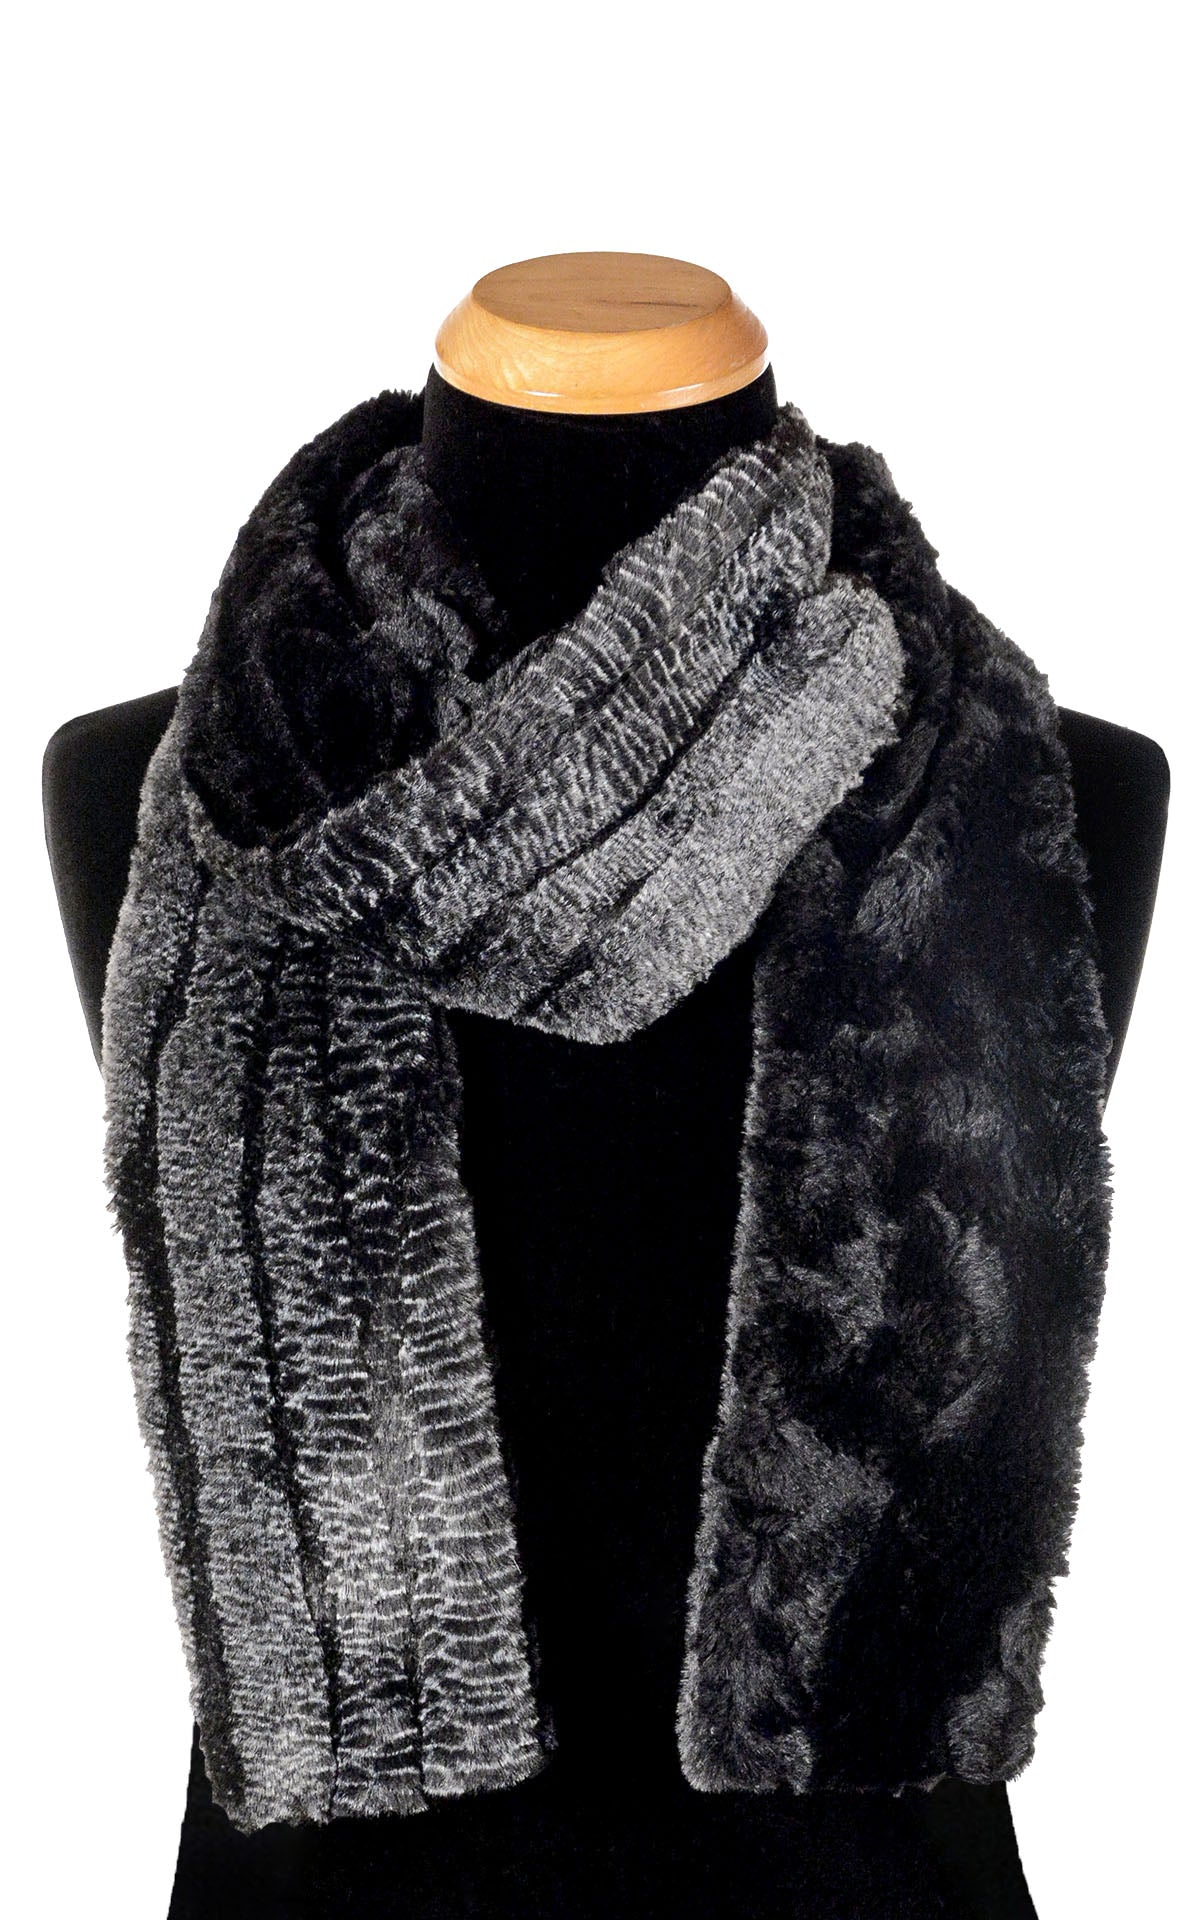 Men's Classic Scarf - Two-Tone, Luxury Faux Fur in Rattlesnake Ridge (Limited Availability)